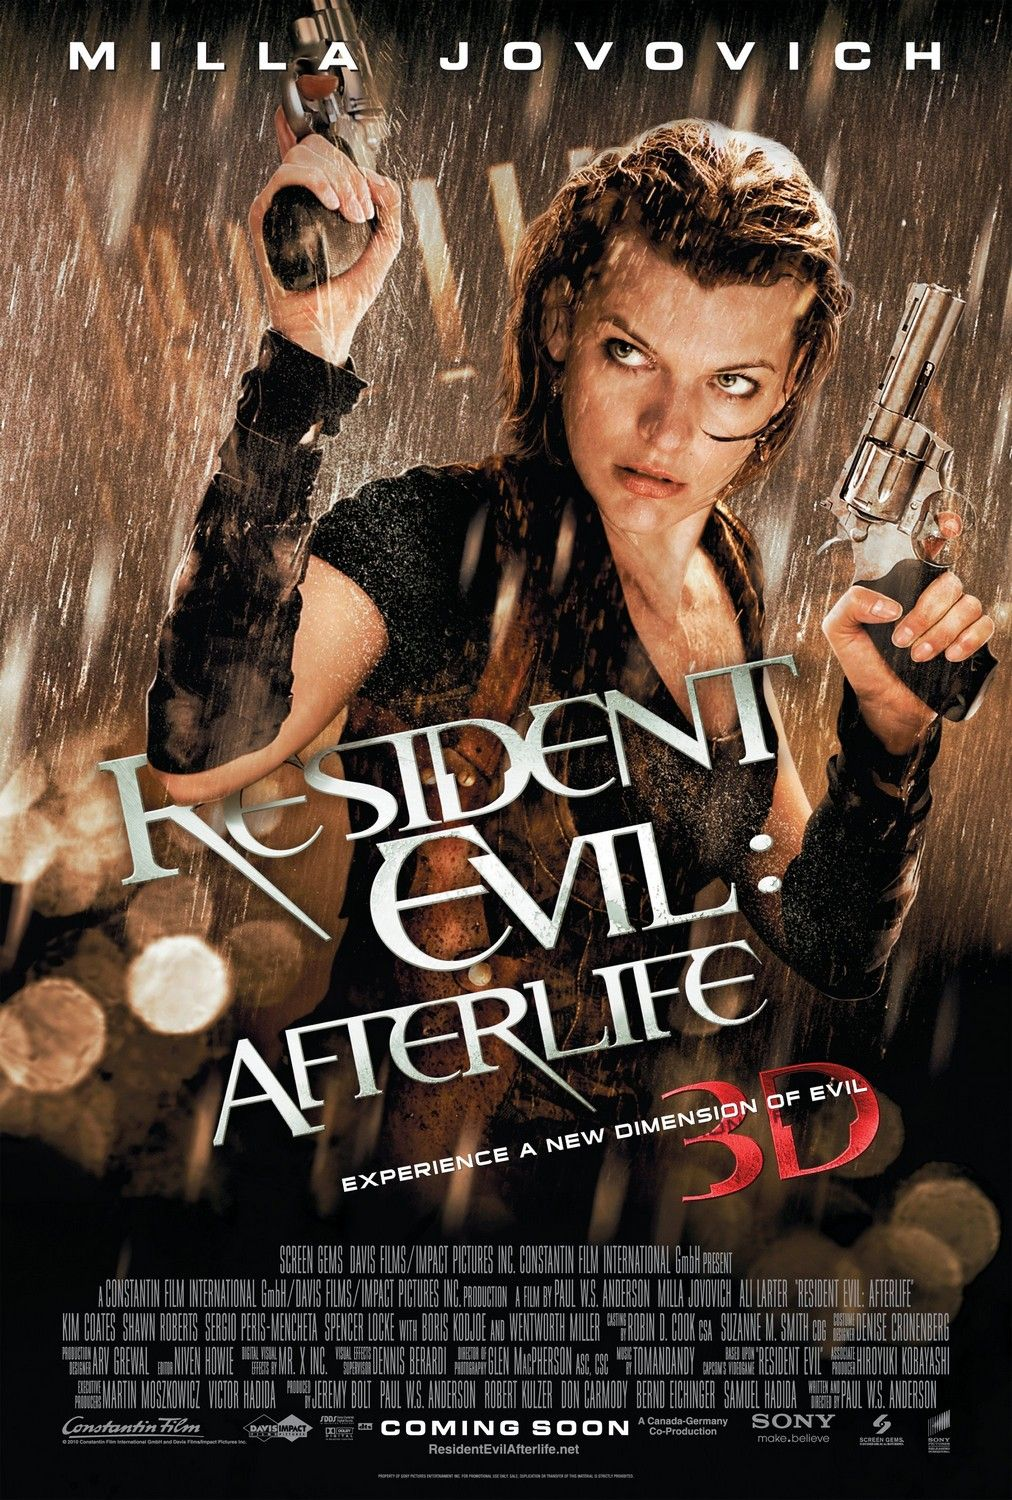 Watch Resident Evil Afterlife Online - Full Movie from - Yidio